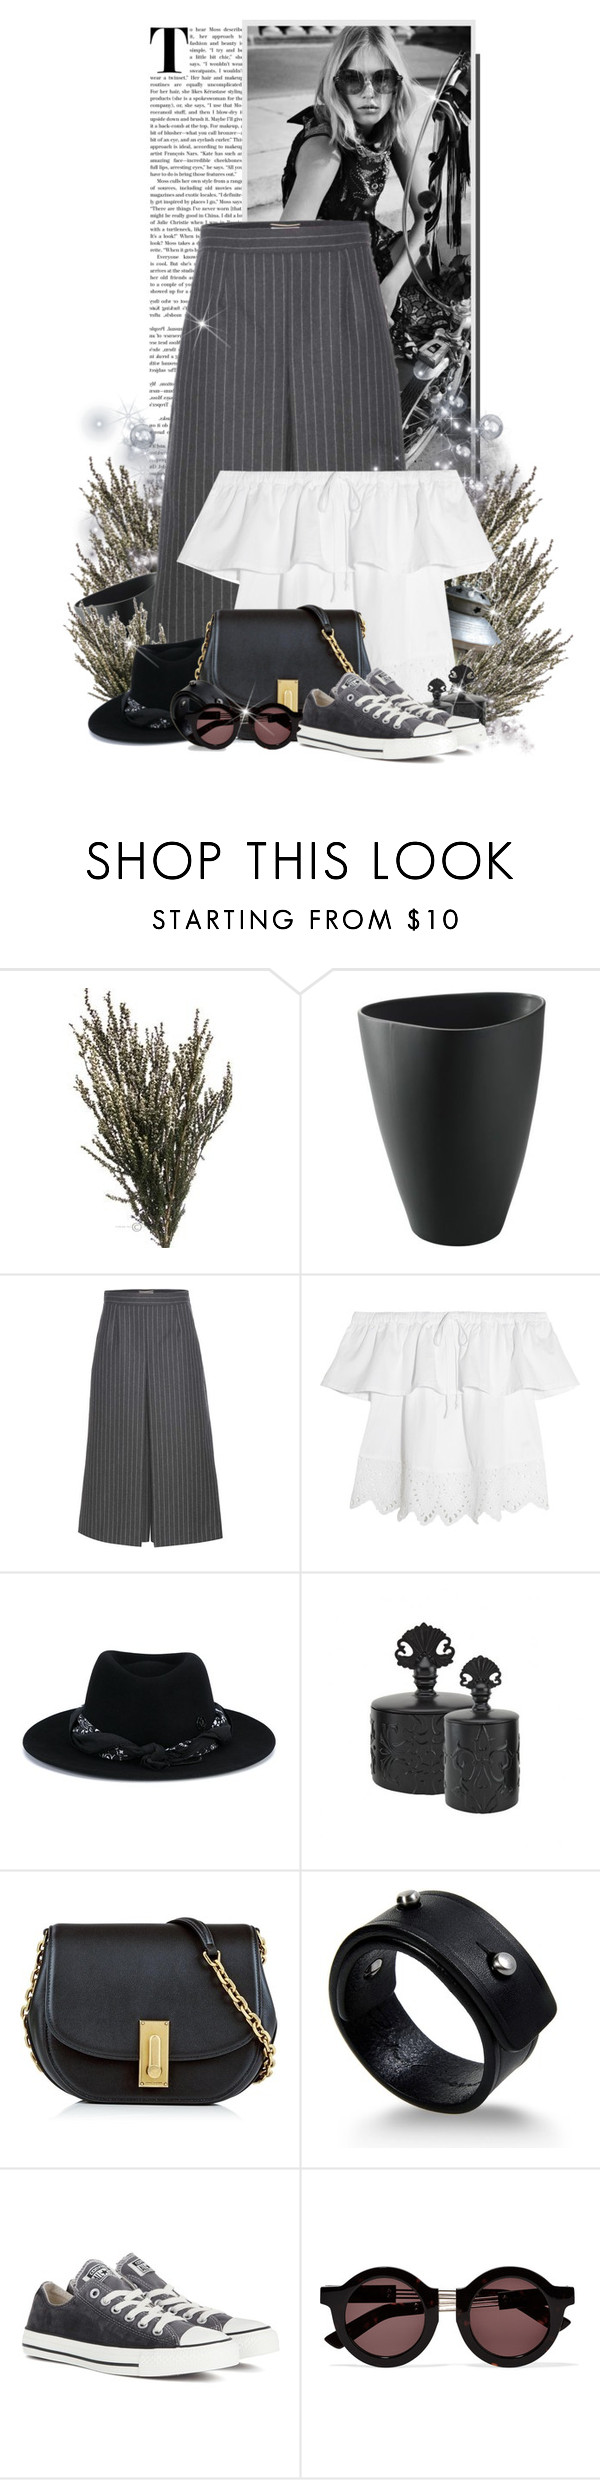 """""""ana"""" by ana-costa-queiroz ❤ liked on Polyvore featuring beauty, Burton, Yves Saint Laurent, Madewell, Maison Michel, Olivine, Marc Jacobs, Rick Owens, Converse and House of Holland"""